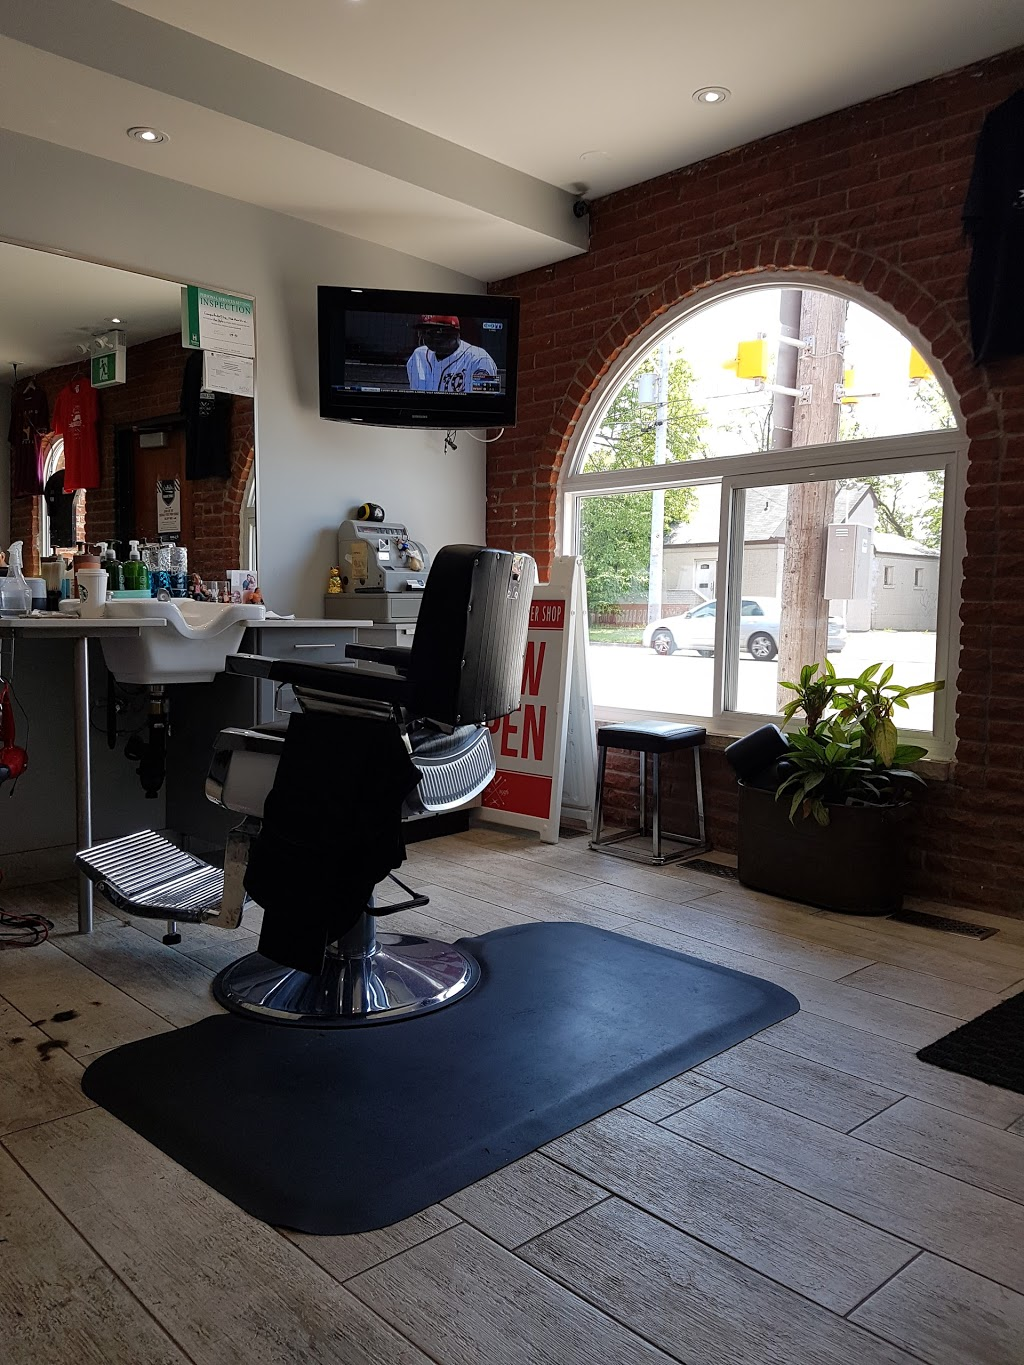 Mikes Campus Barber Shop | hair care | 1566 Main St W, Hamilton, ON L8S 1E2, Canada | 9055281953 OR +1 905-528-1953